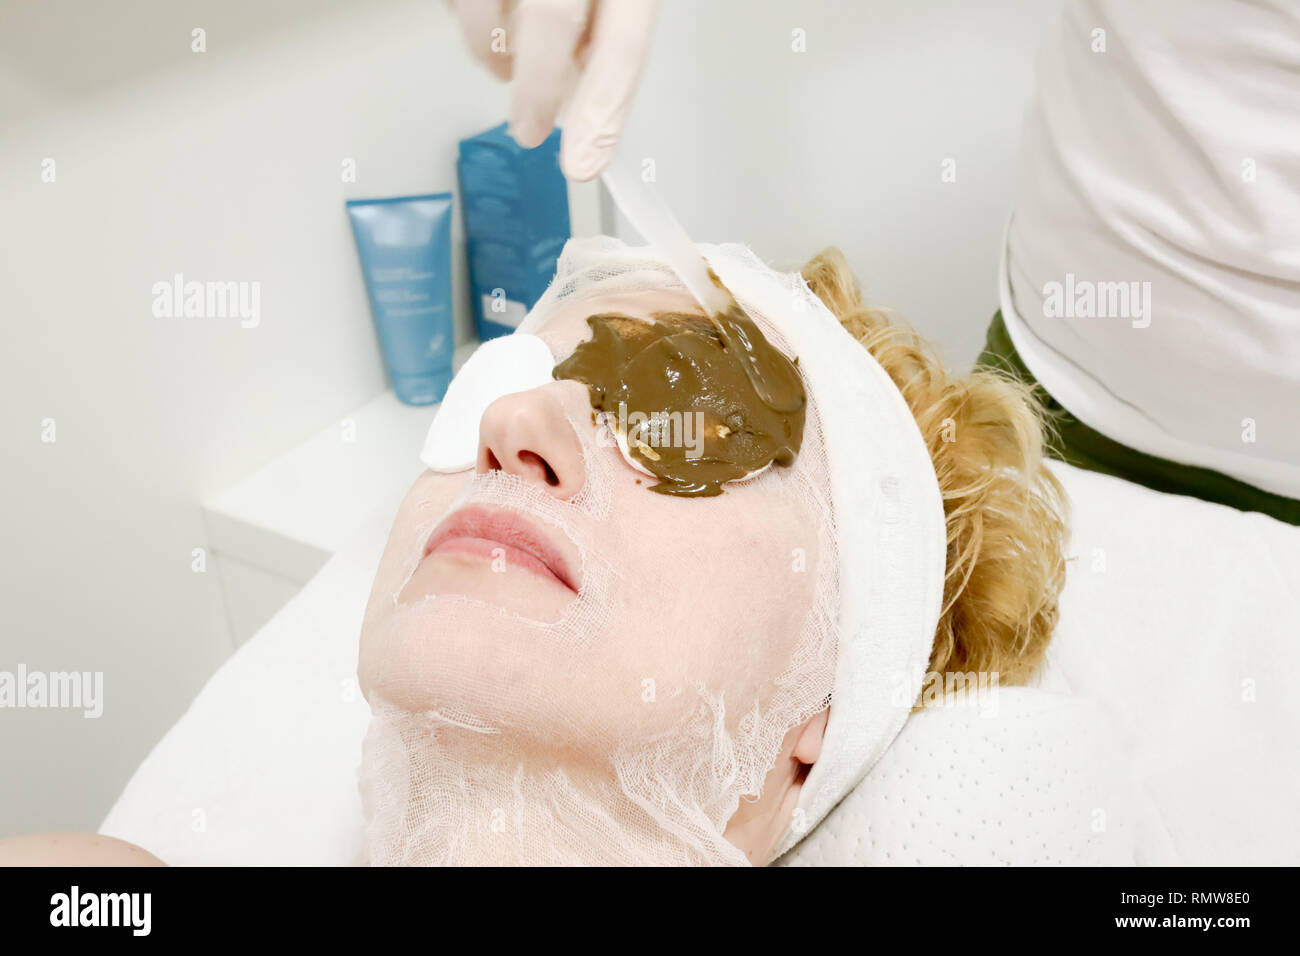 beautician worker applying  cosmetic facial mask of sea algae for anti aging and  hydration of skin  to female client in beauty salon - Stock Image